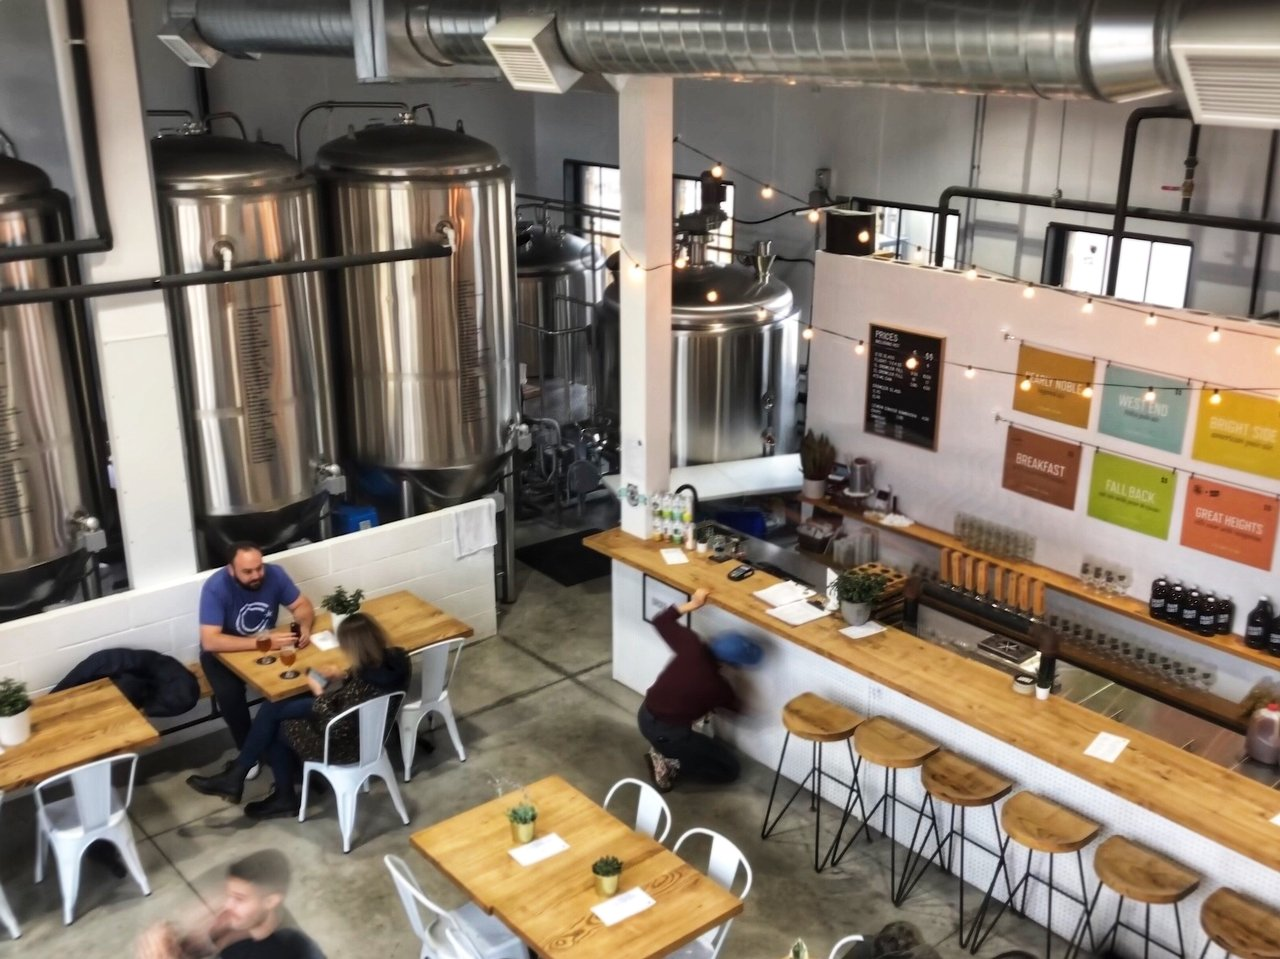 View of Grain & Grit tap room with tables and bar